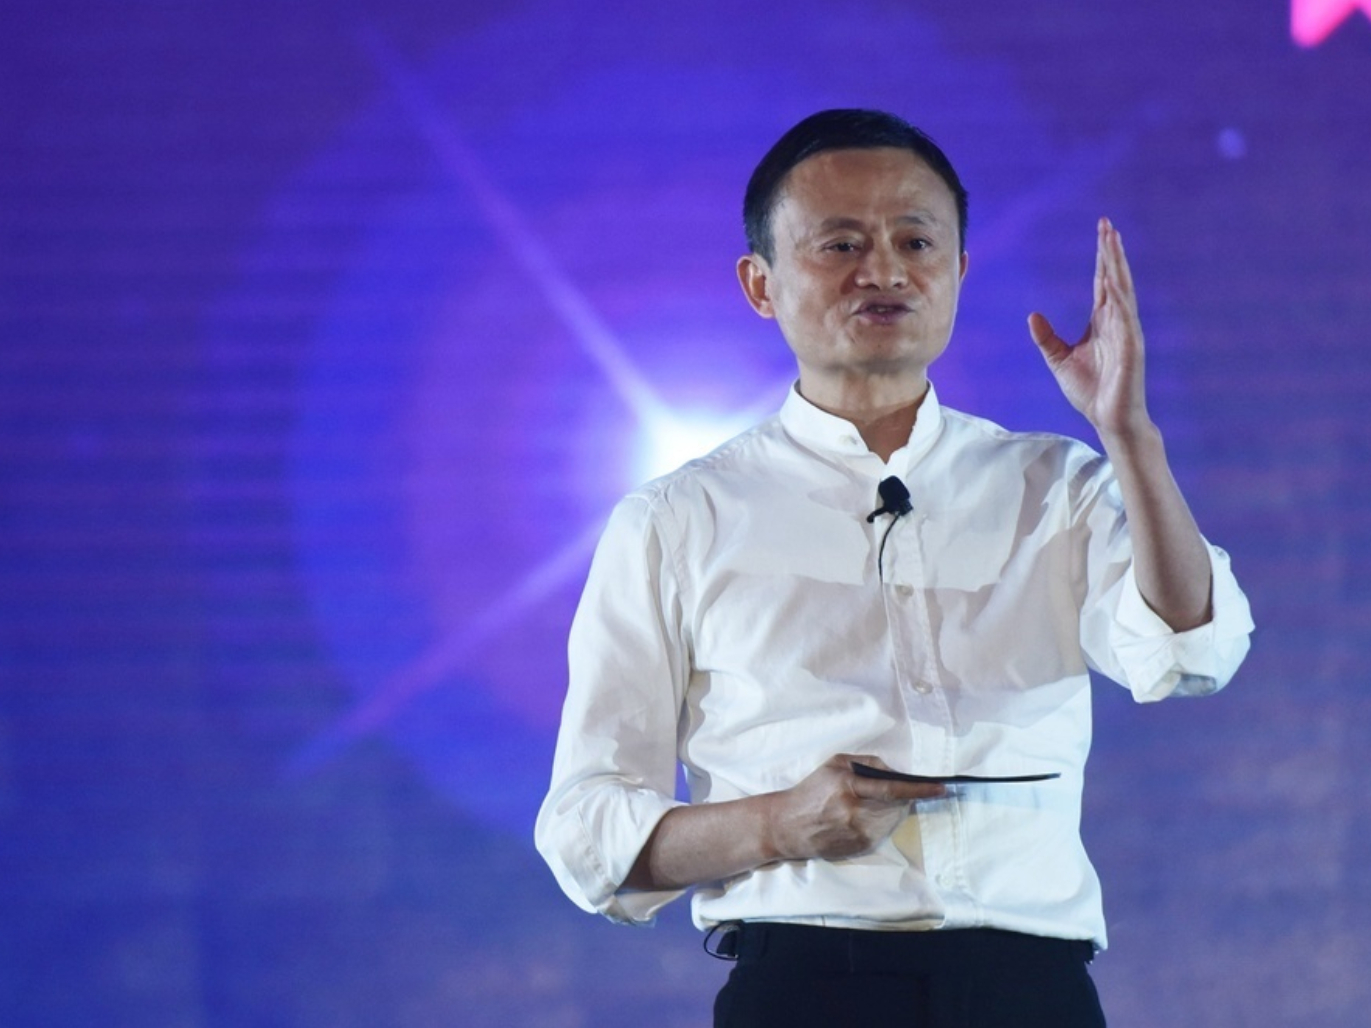 Jack Ma joins Twitter with 1st tweet on donation to the US